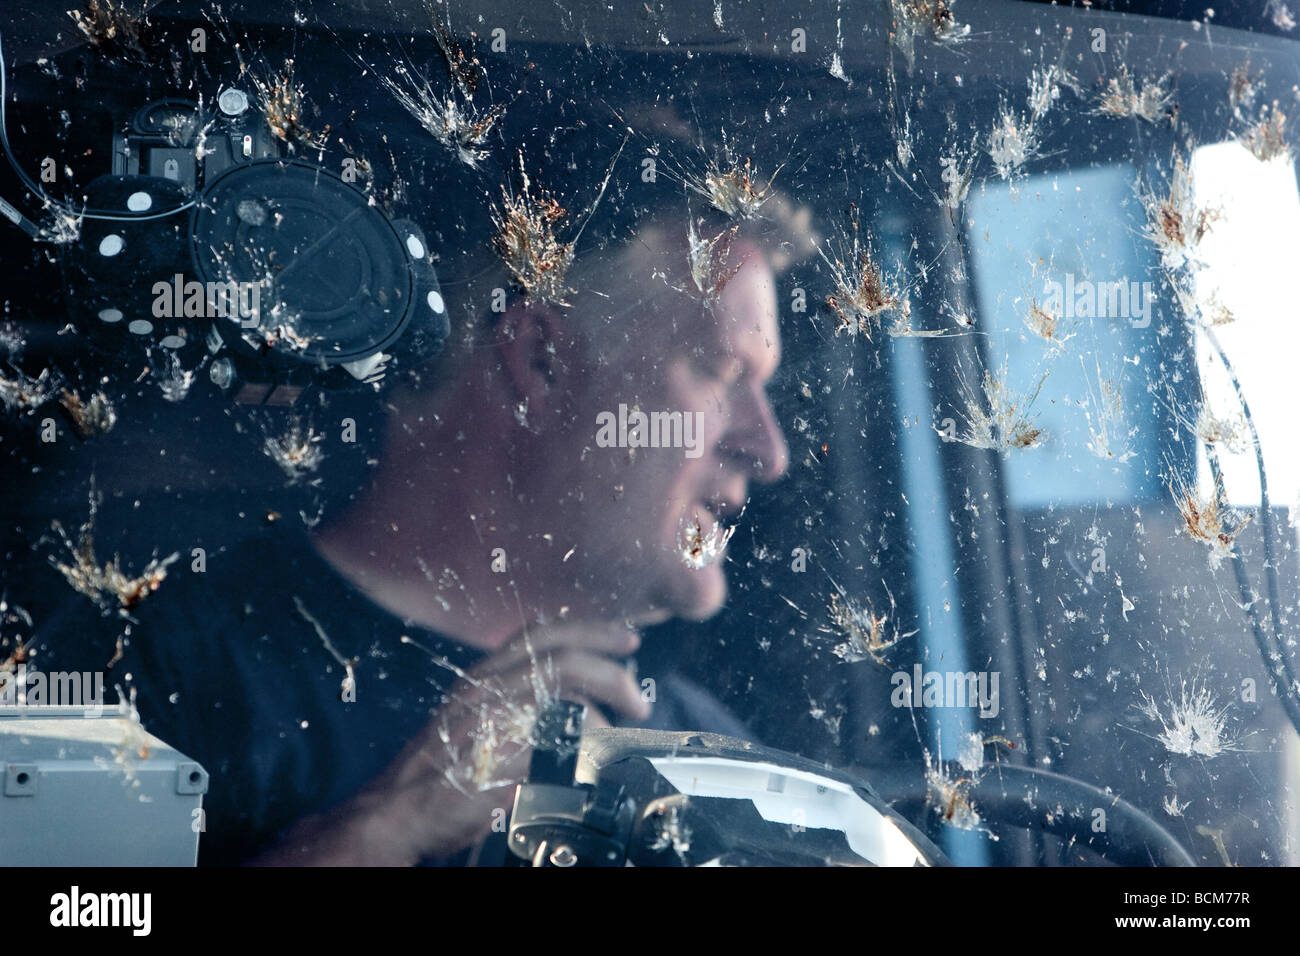 Herbert Stein, driver of the Doppler on Wheels truck. The windshield is spattered with bugs. Project Vortex 2 - Stock Image